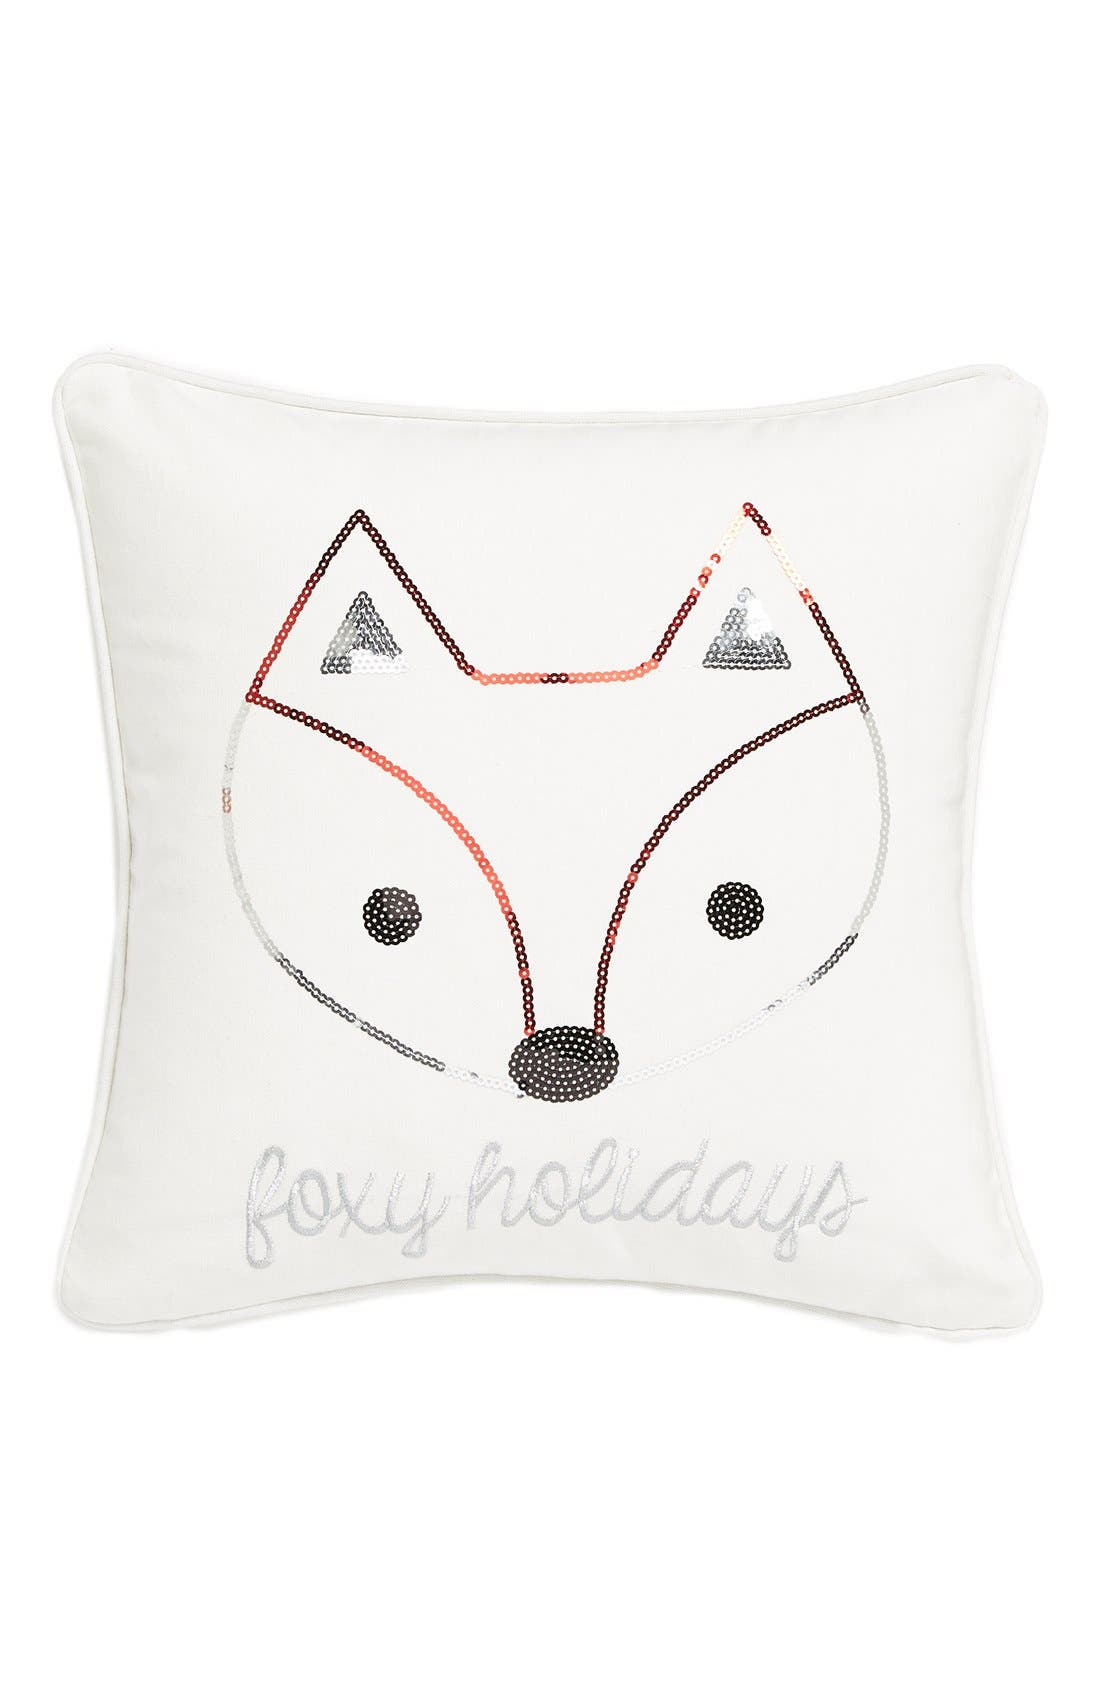 Alternate Image 1 Selected - Levtex 'Foxy Holiday' Sequin Pillow